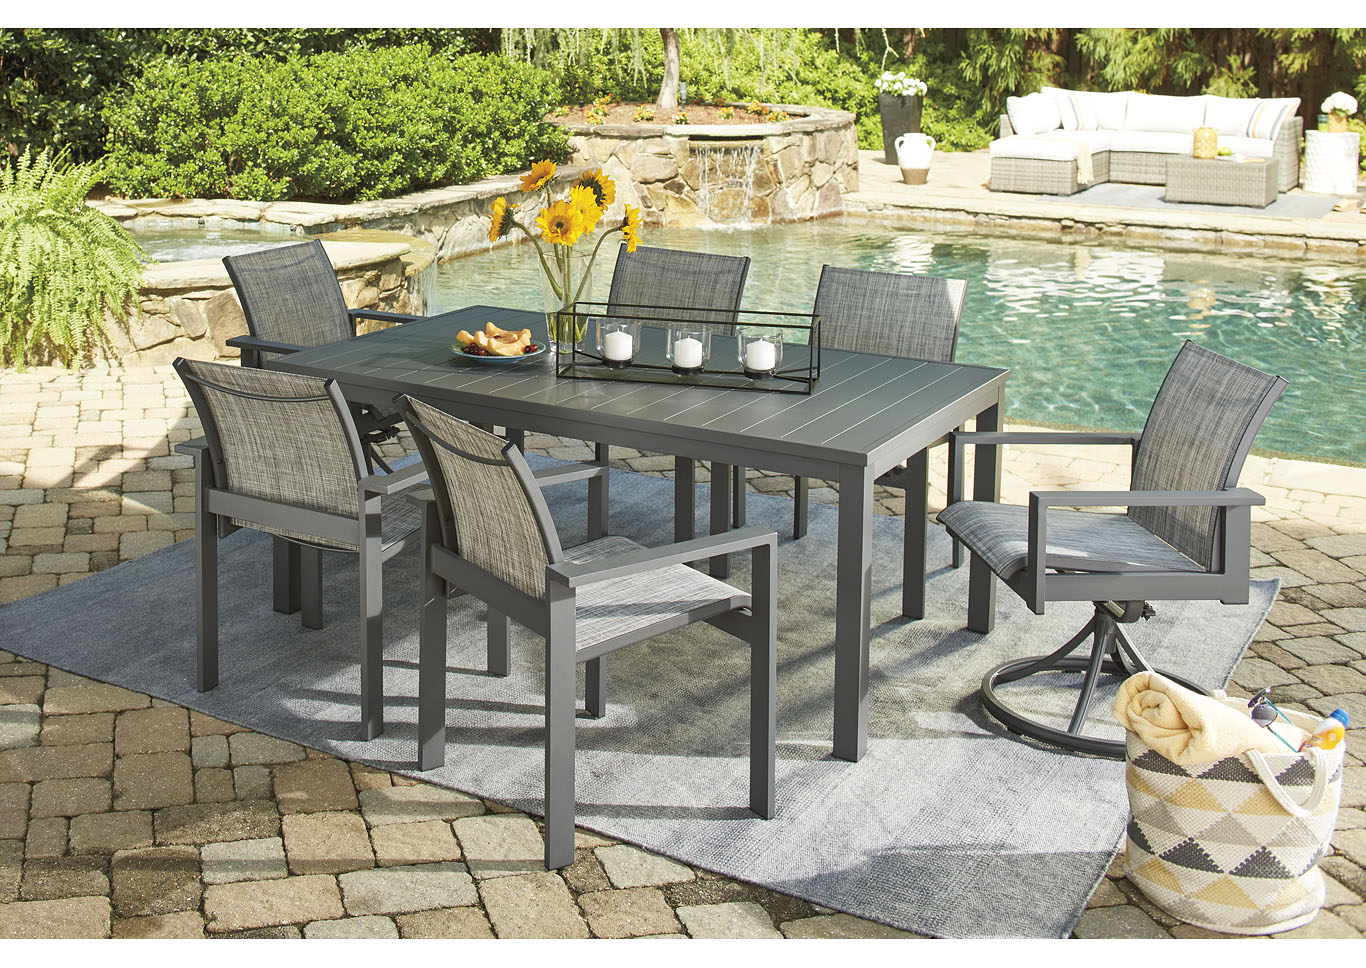 Okada Gray Dining Table w/4 Arm Chair, 2 Swivel Chair and Umbrella Option,Outdoor By Ashley